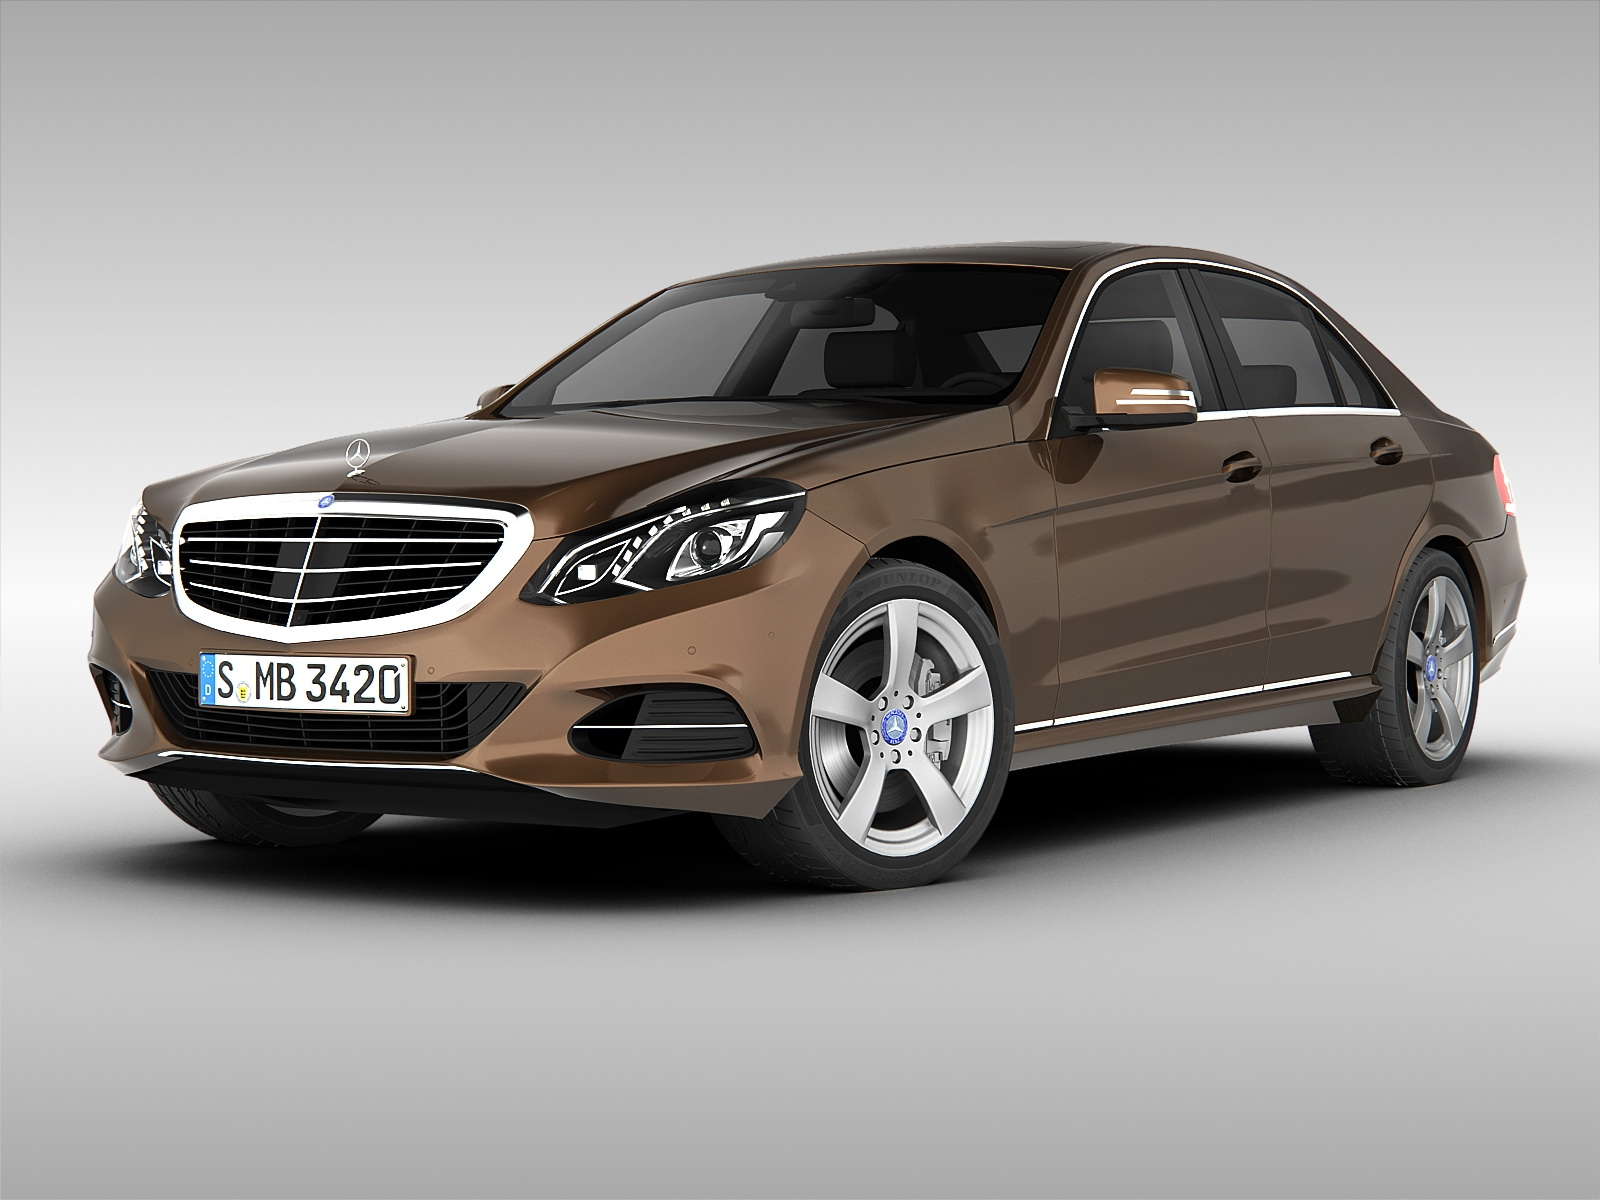 Mercedes-benz e-class photo - 1